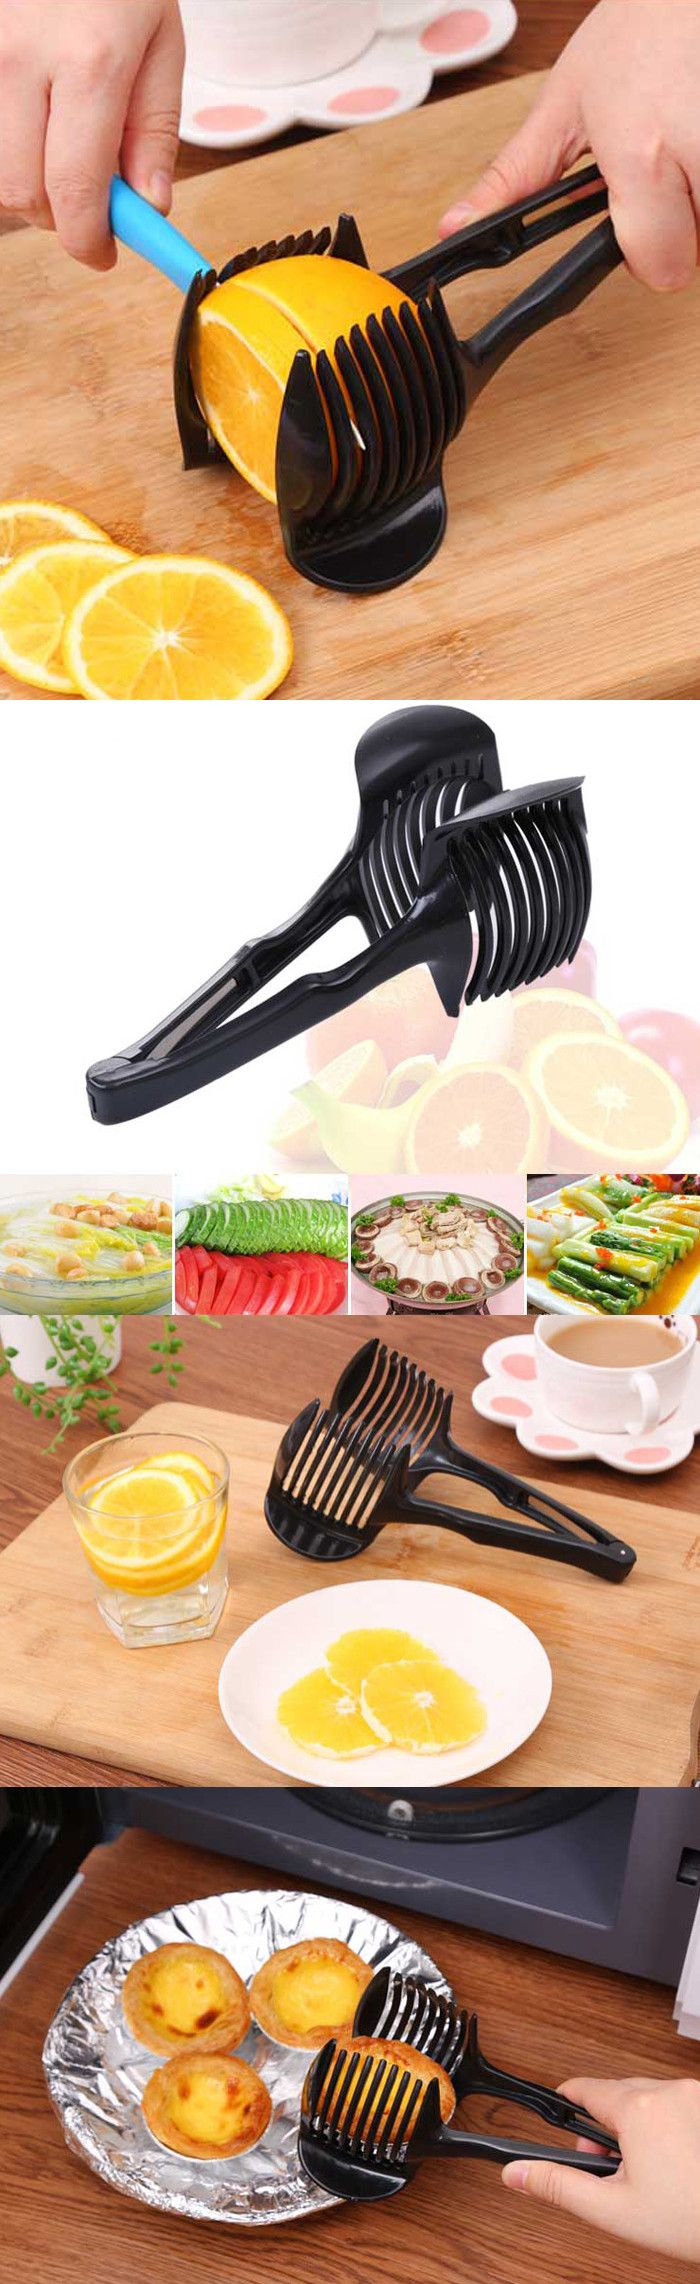 Creative Lemon Fruit Handheld Slicer